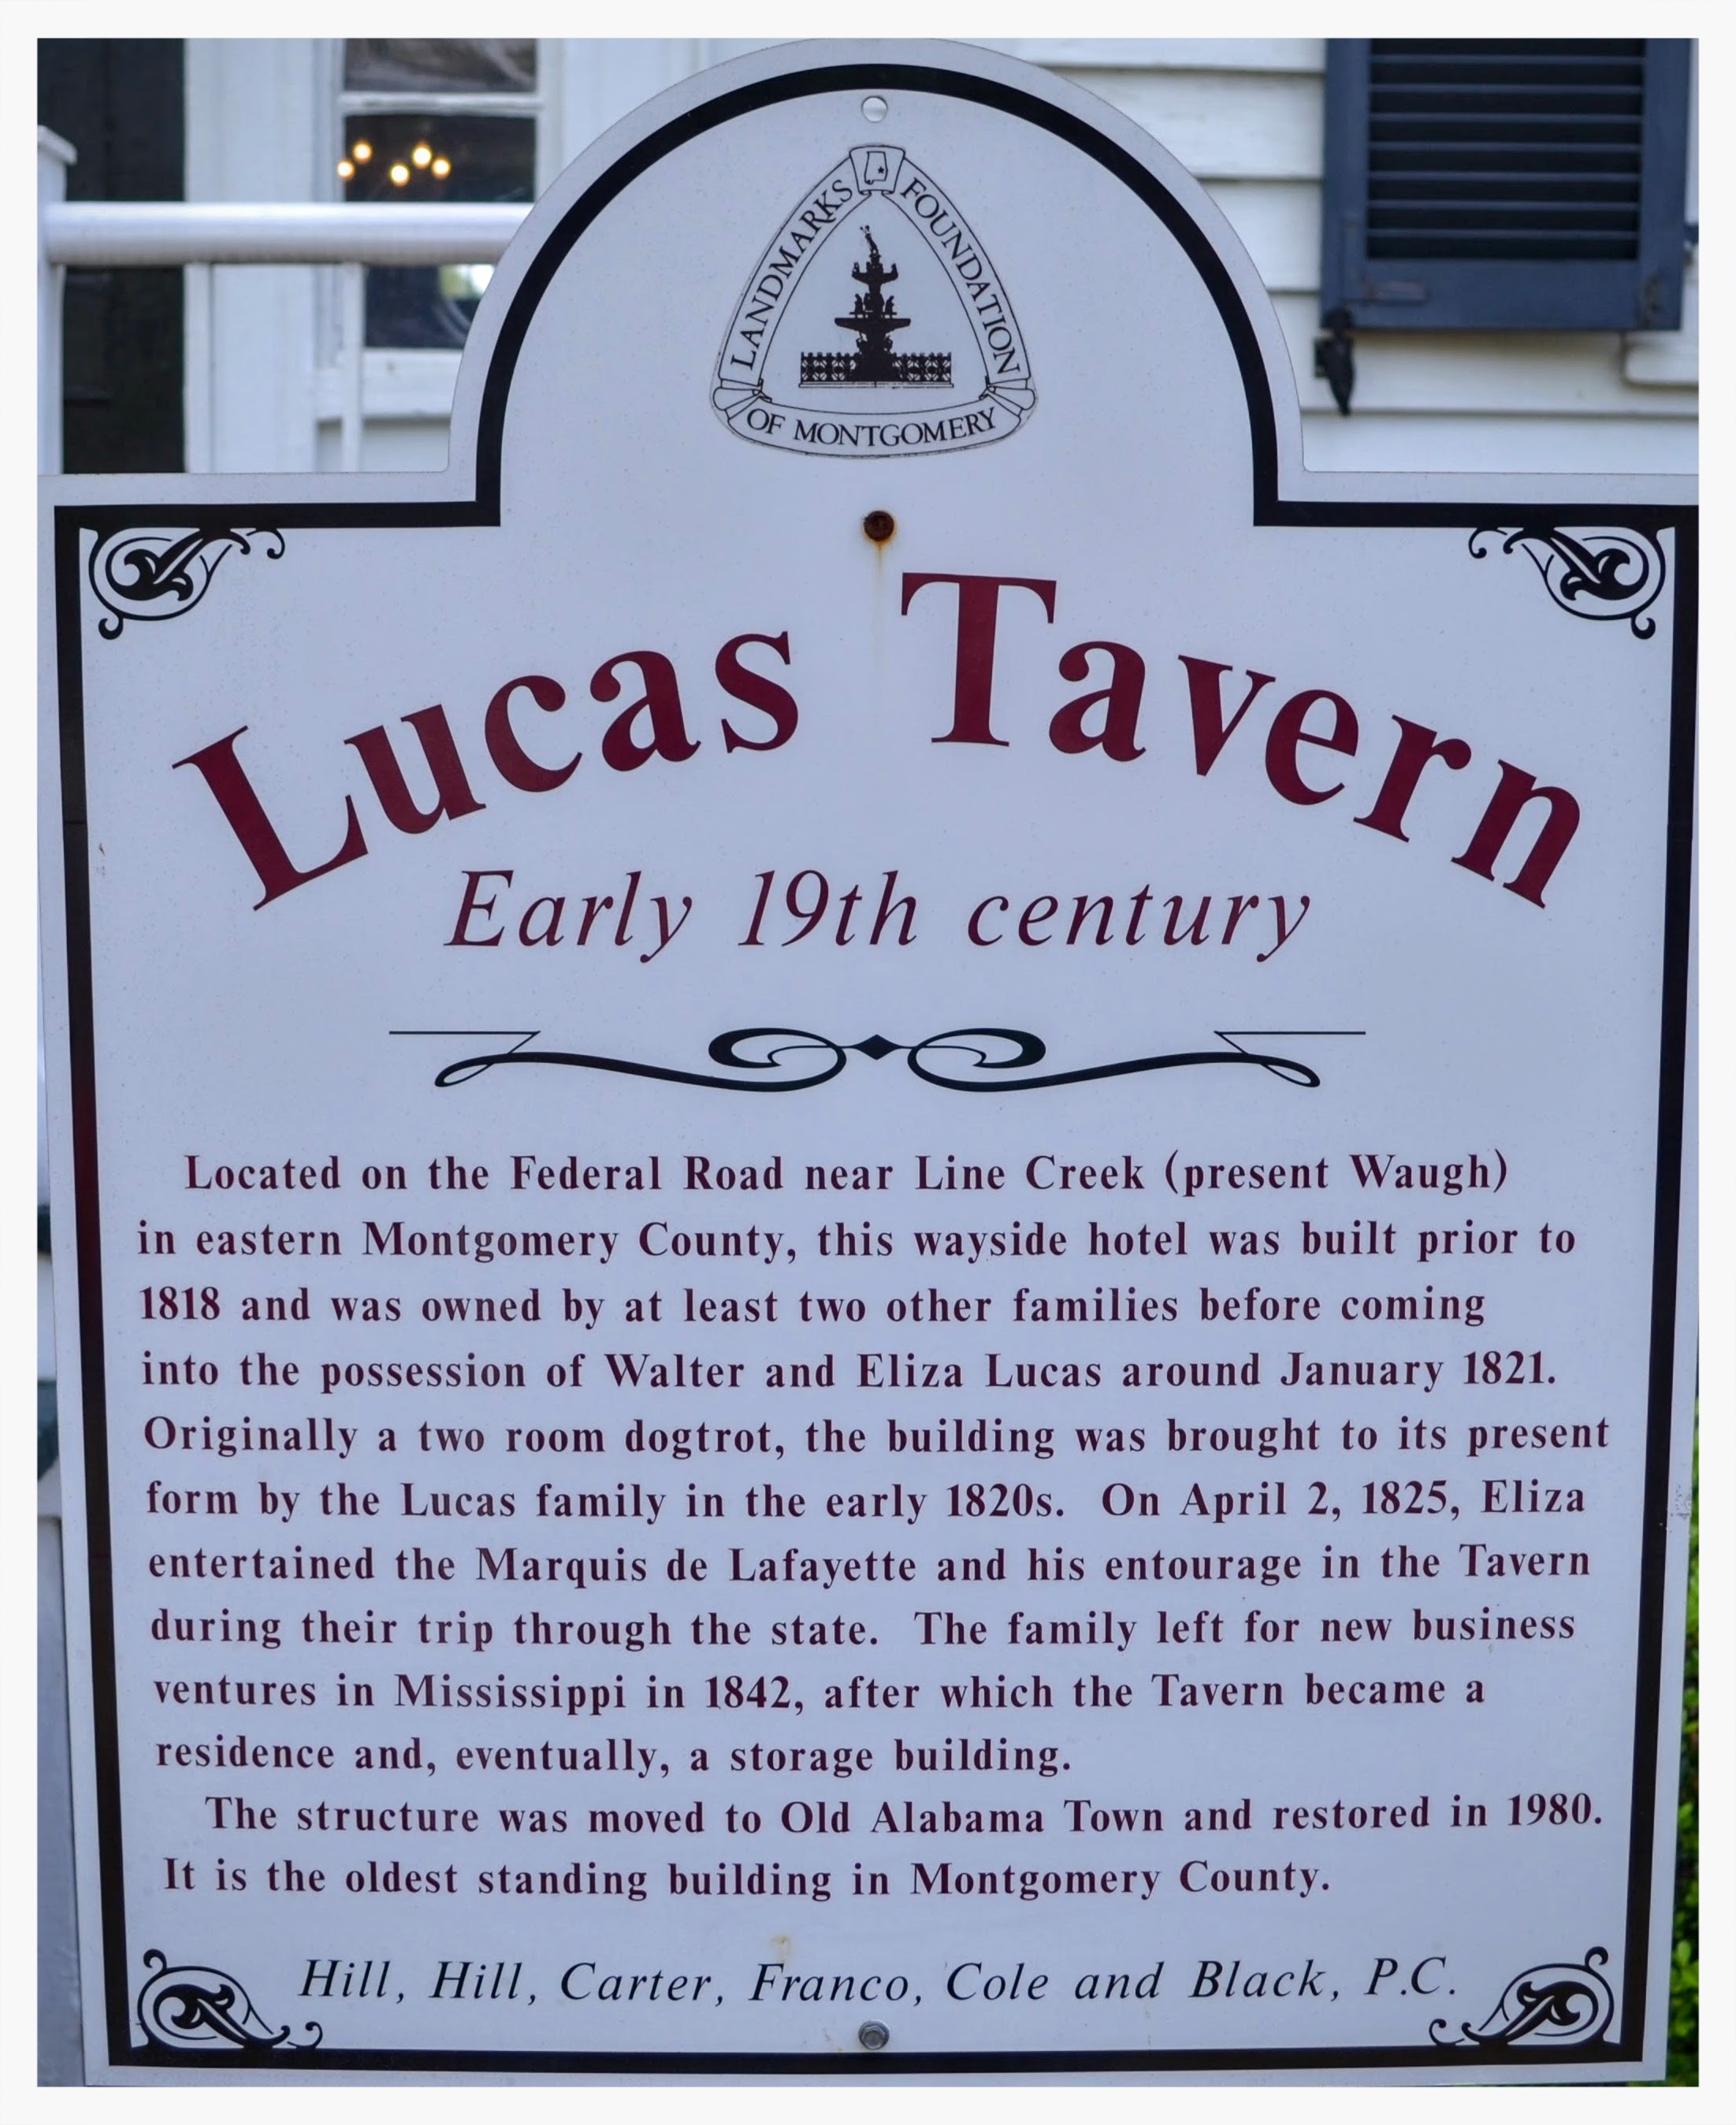 Lucas Tavern information placard, Old Alabama Town, Montgomery, Alabama